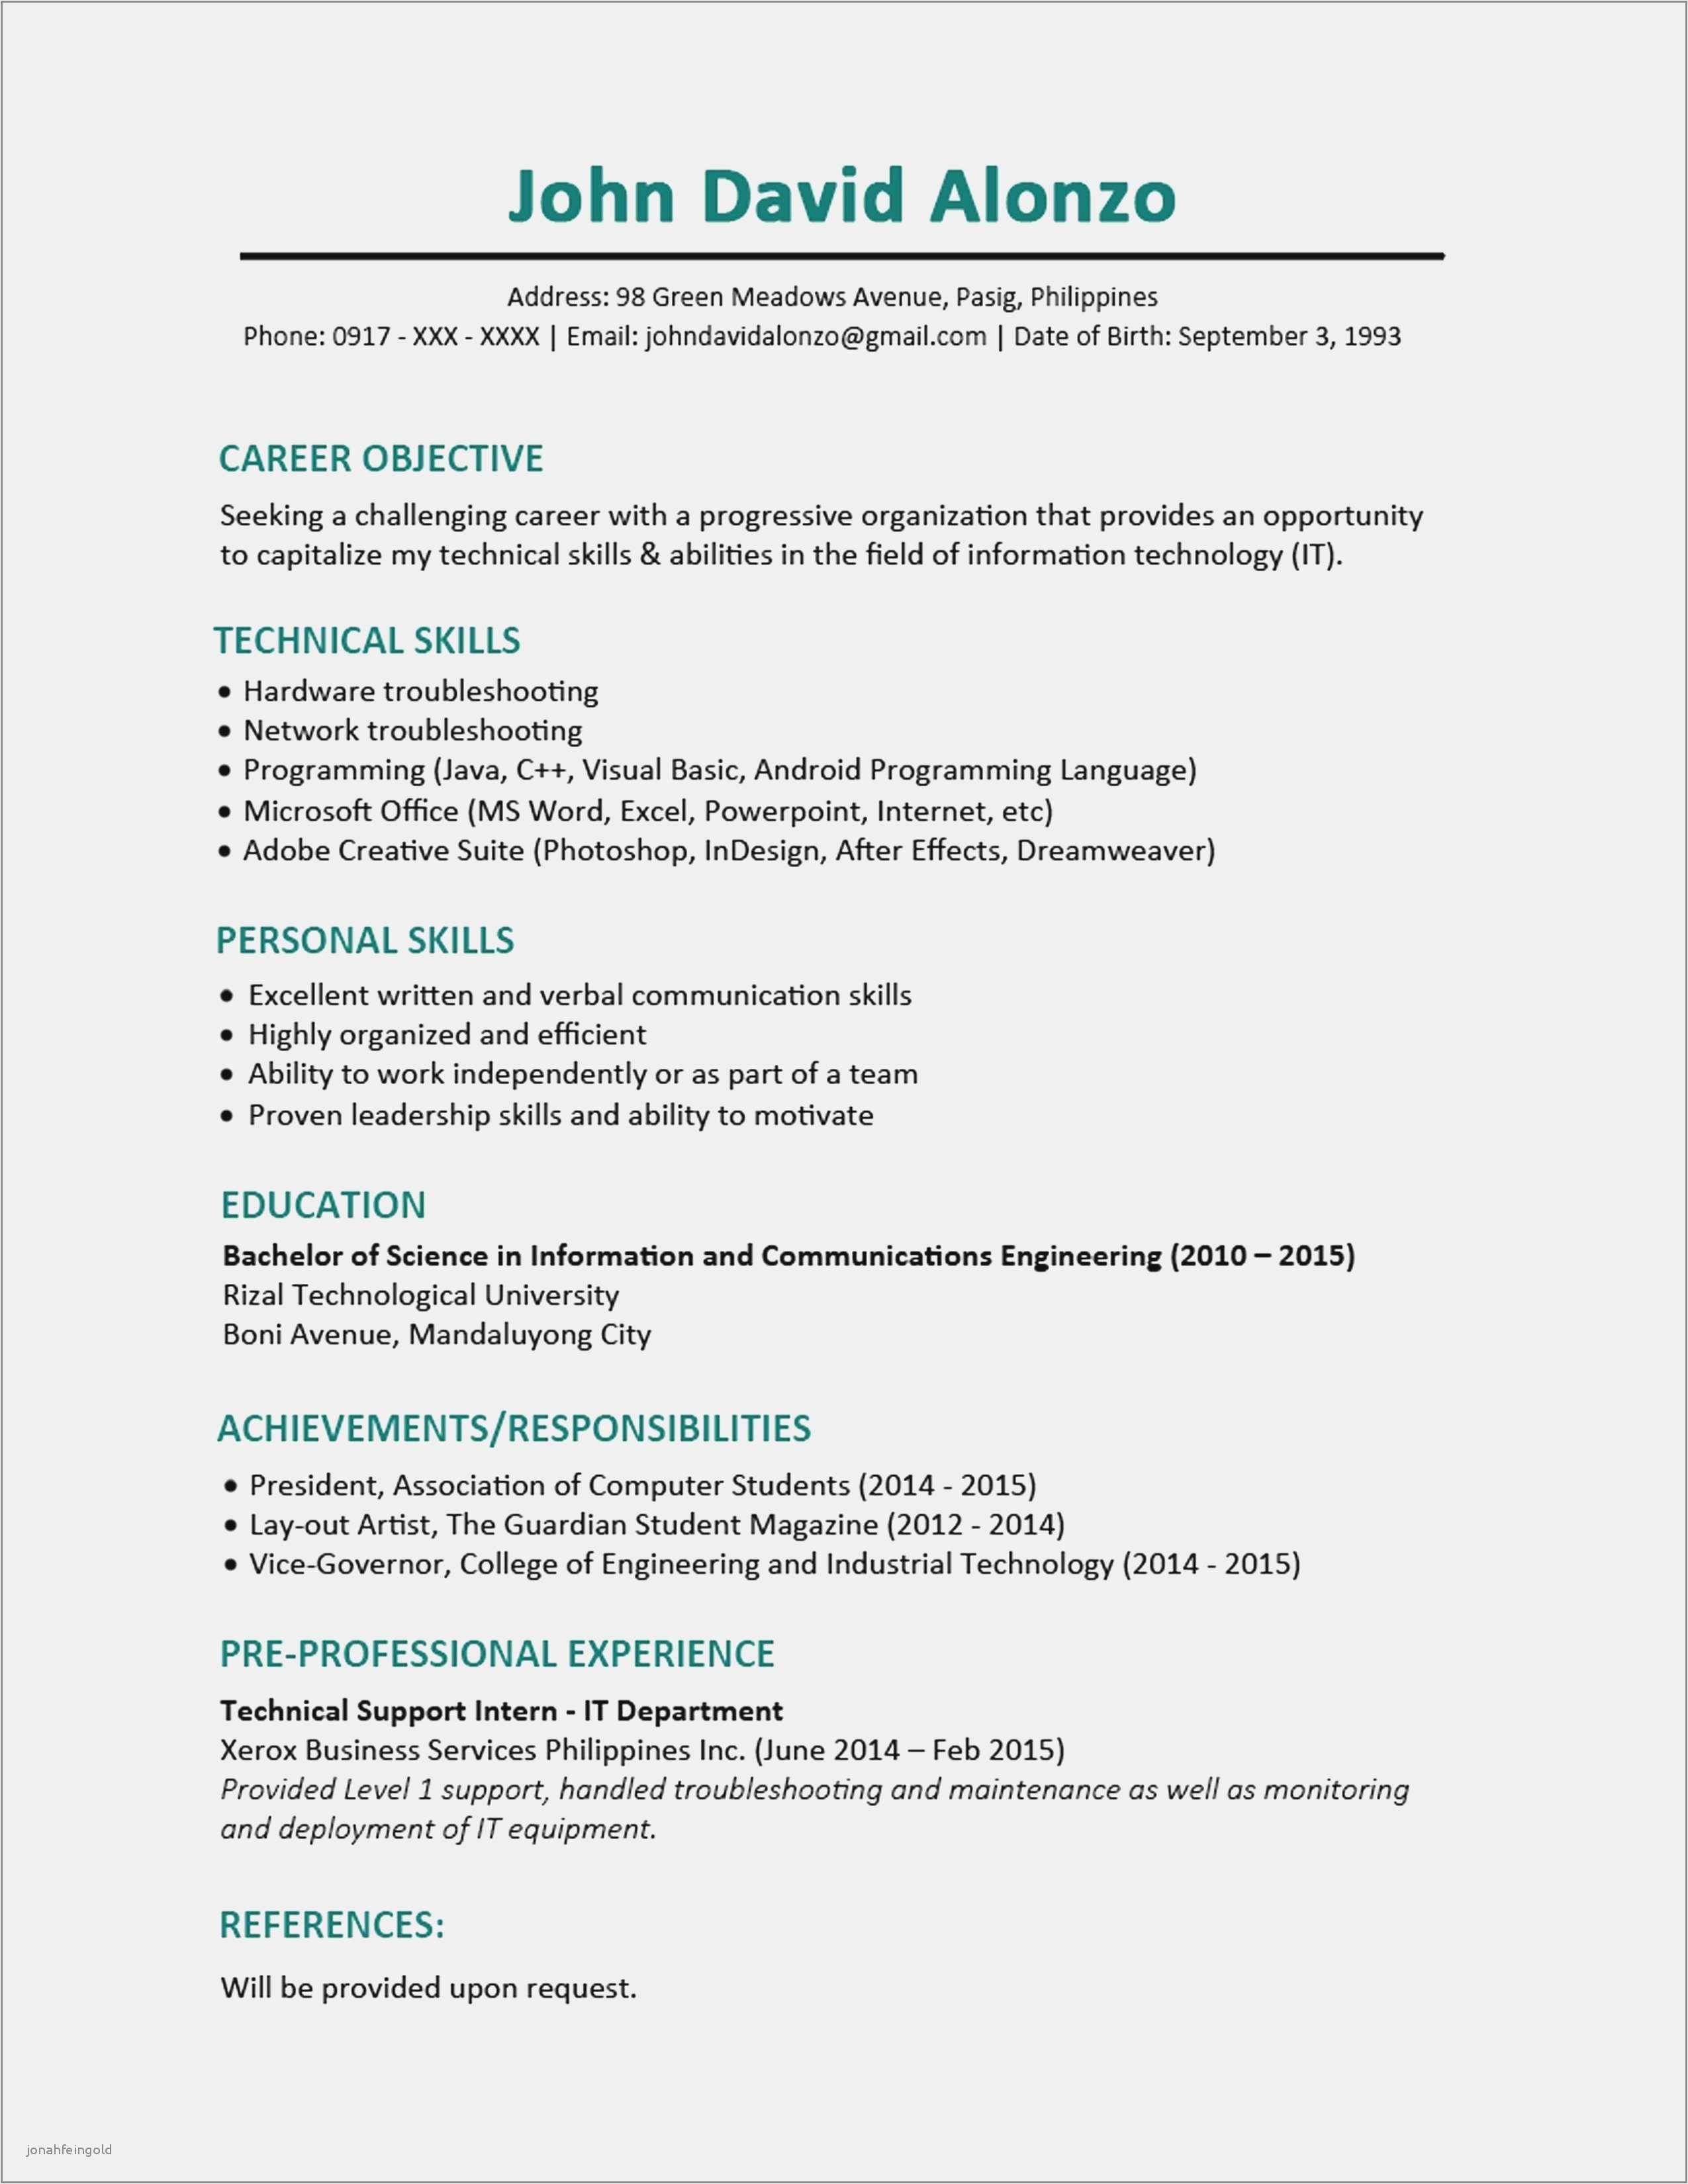 80 Cool Collection Of Java Developer Resume Summary Examples Resume Objective Examples Resume Skills Resume Examples